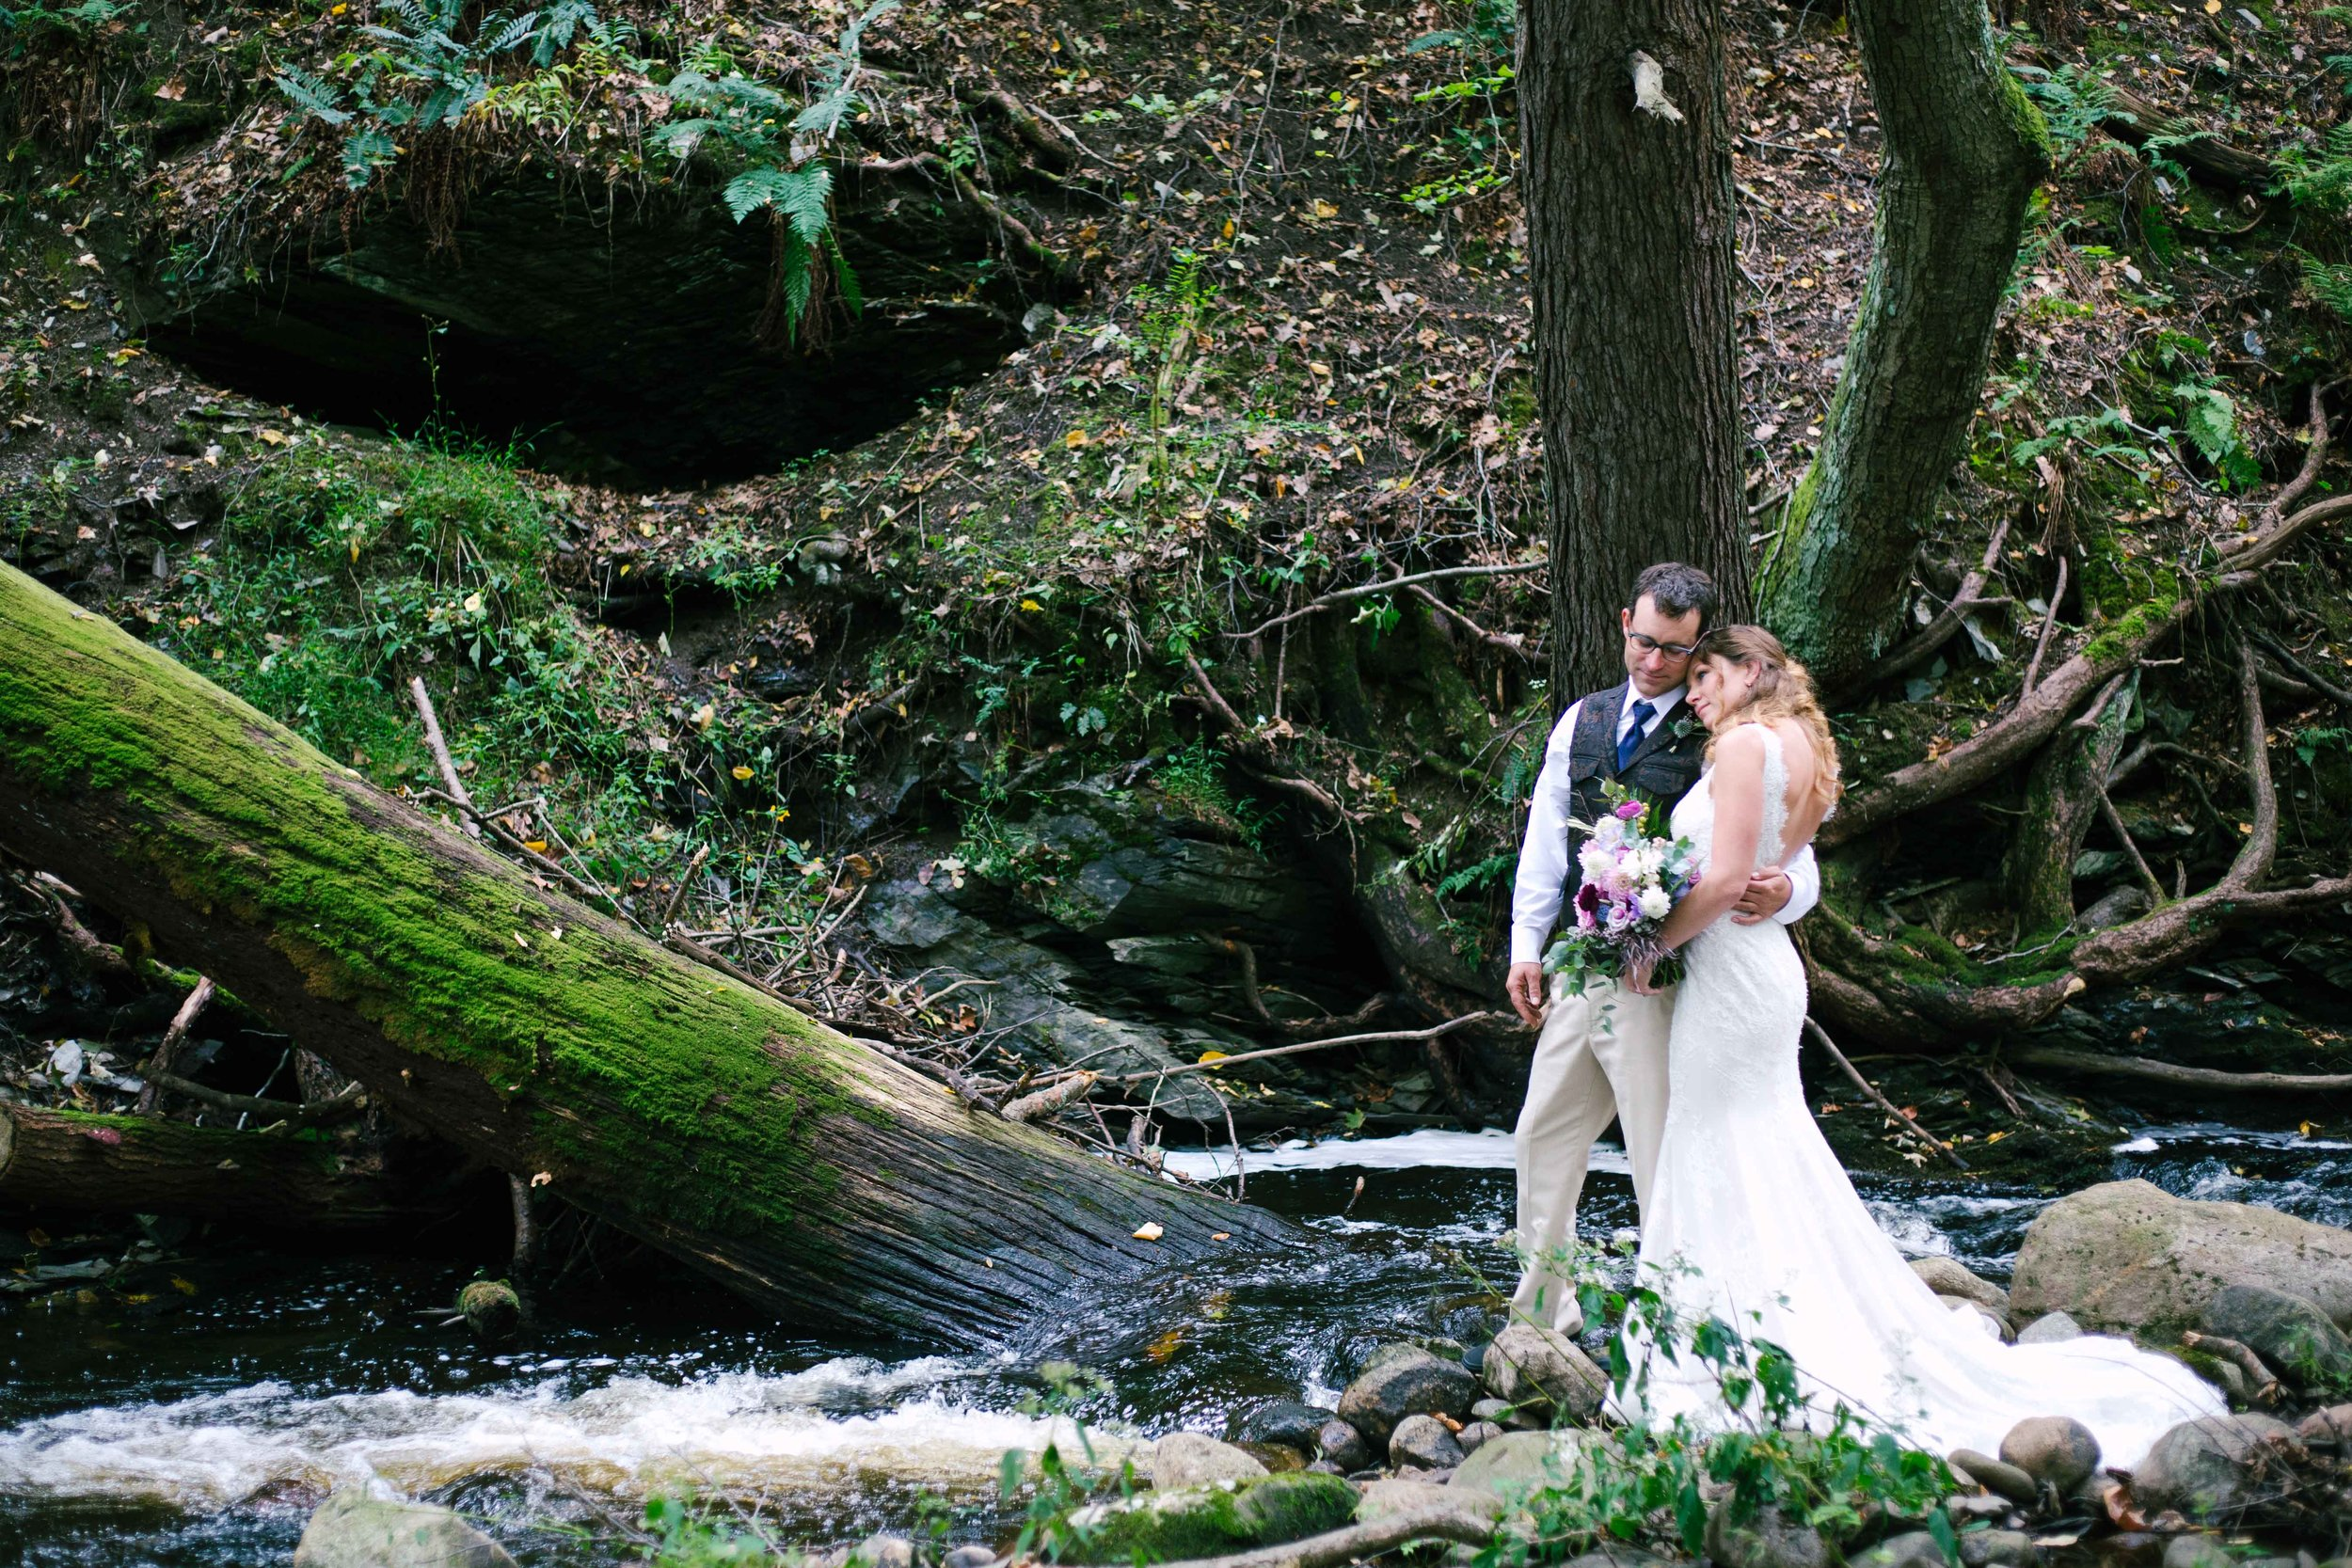 Alysa and Sean's Magical Stillwater Wedding in the Woods-15.jpg